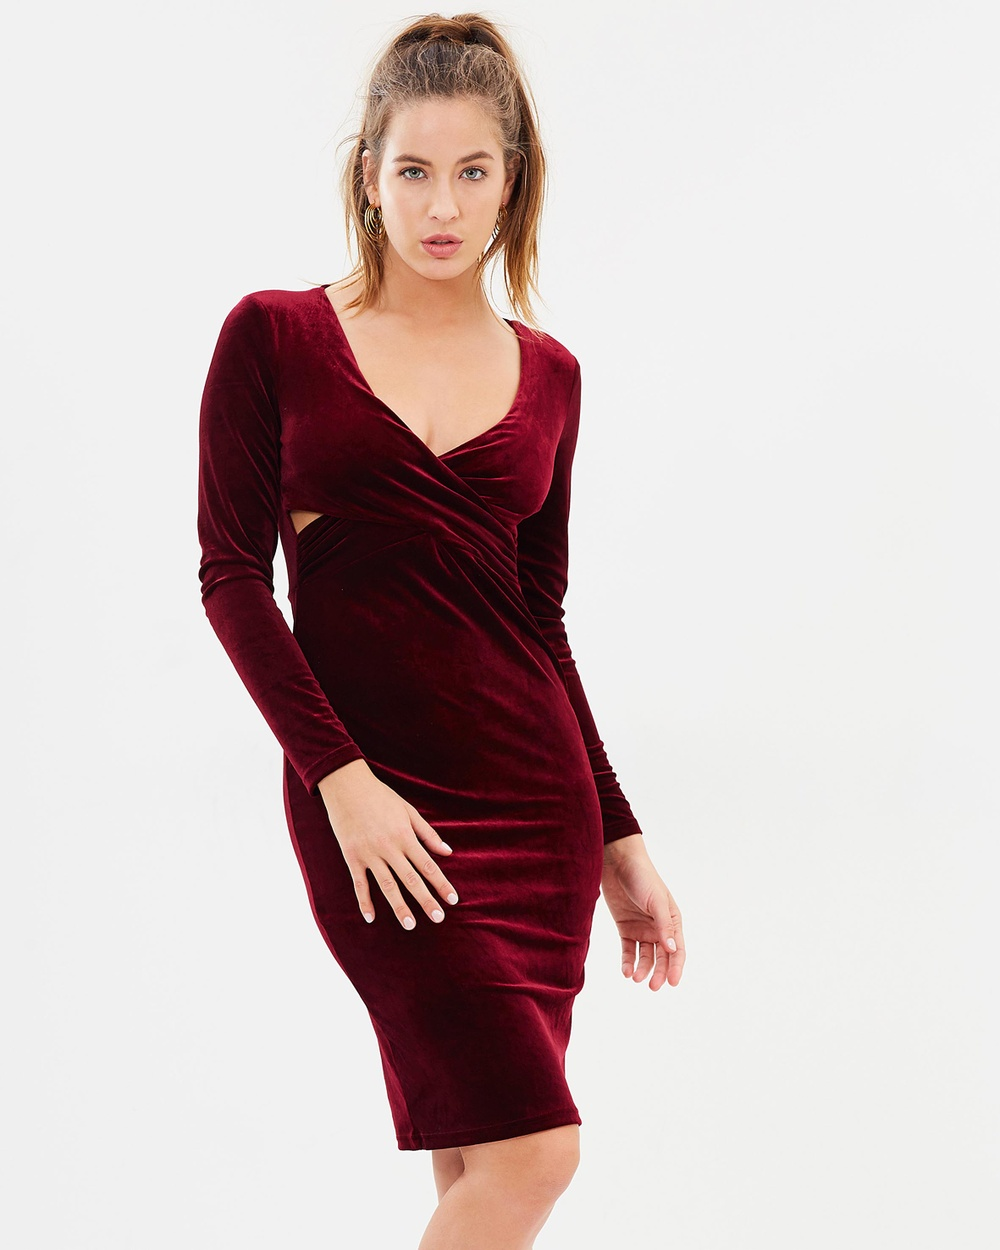 Atmos & Here ICONIC EXCLUSIVE Valerie Velvet Pencil Dress Bodycon Dresses Wine Velvet ICONIC EXCLUSIVE Valerie Velvet Pencil Dress